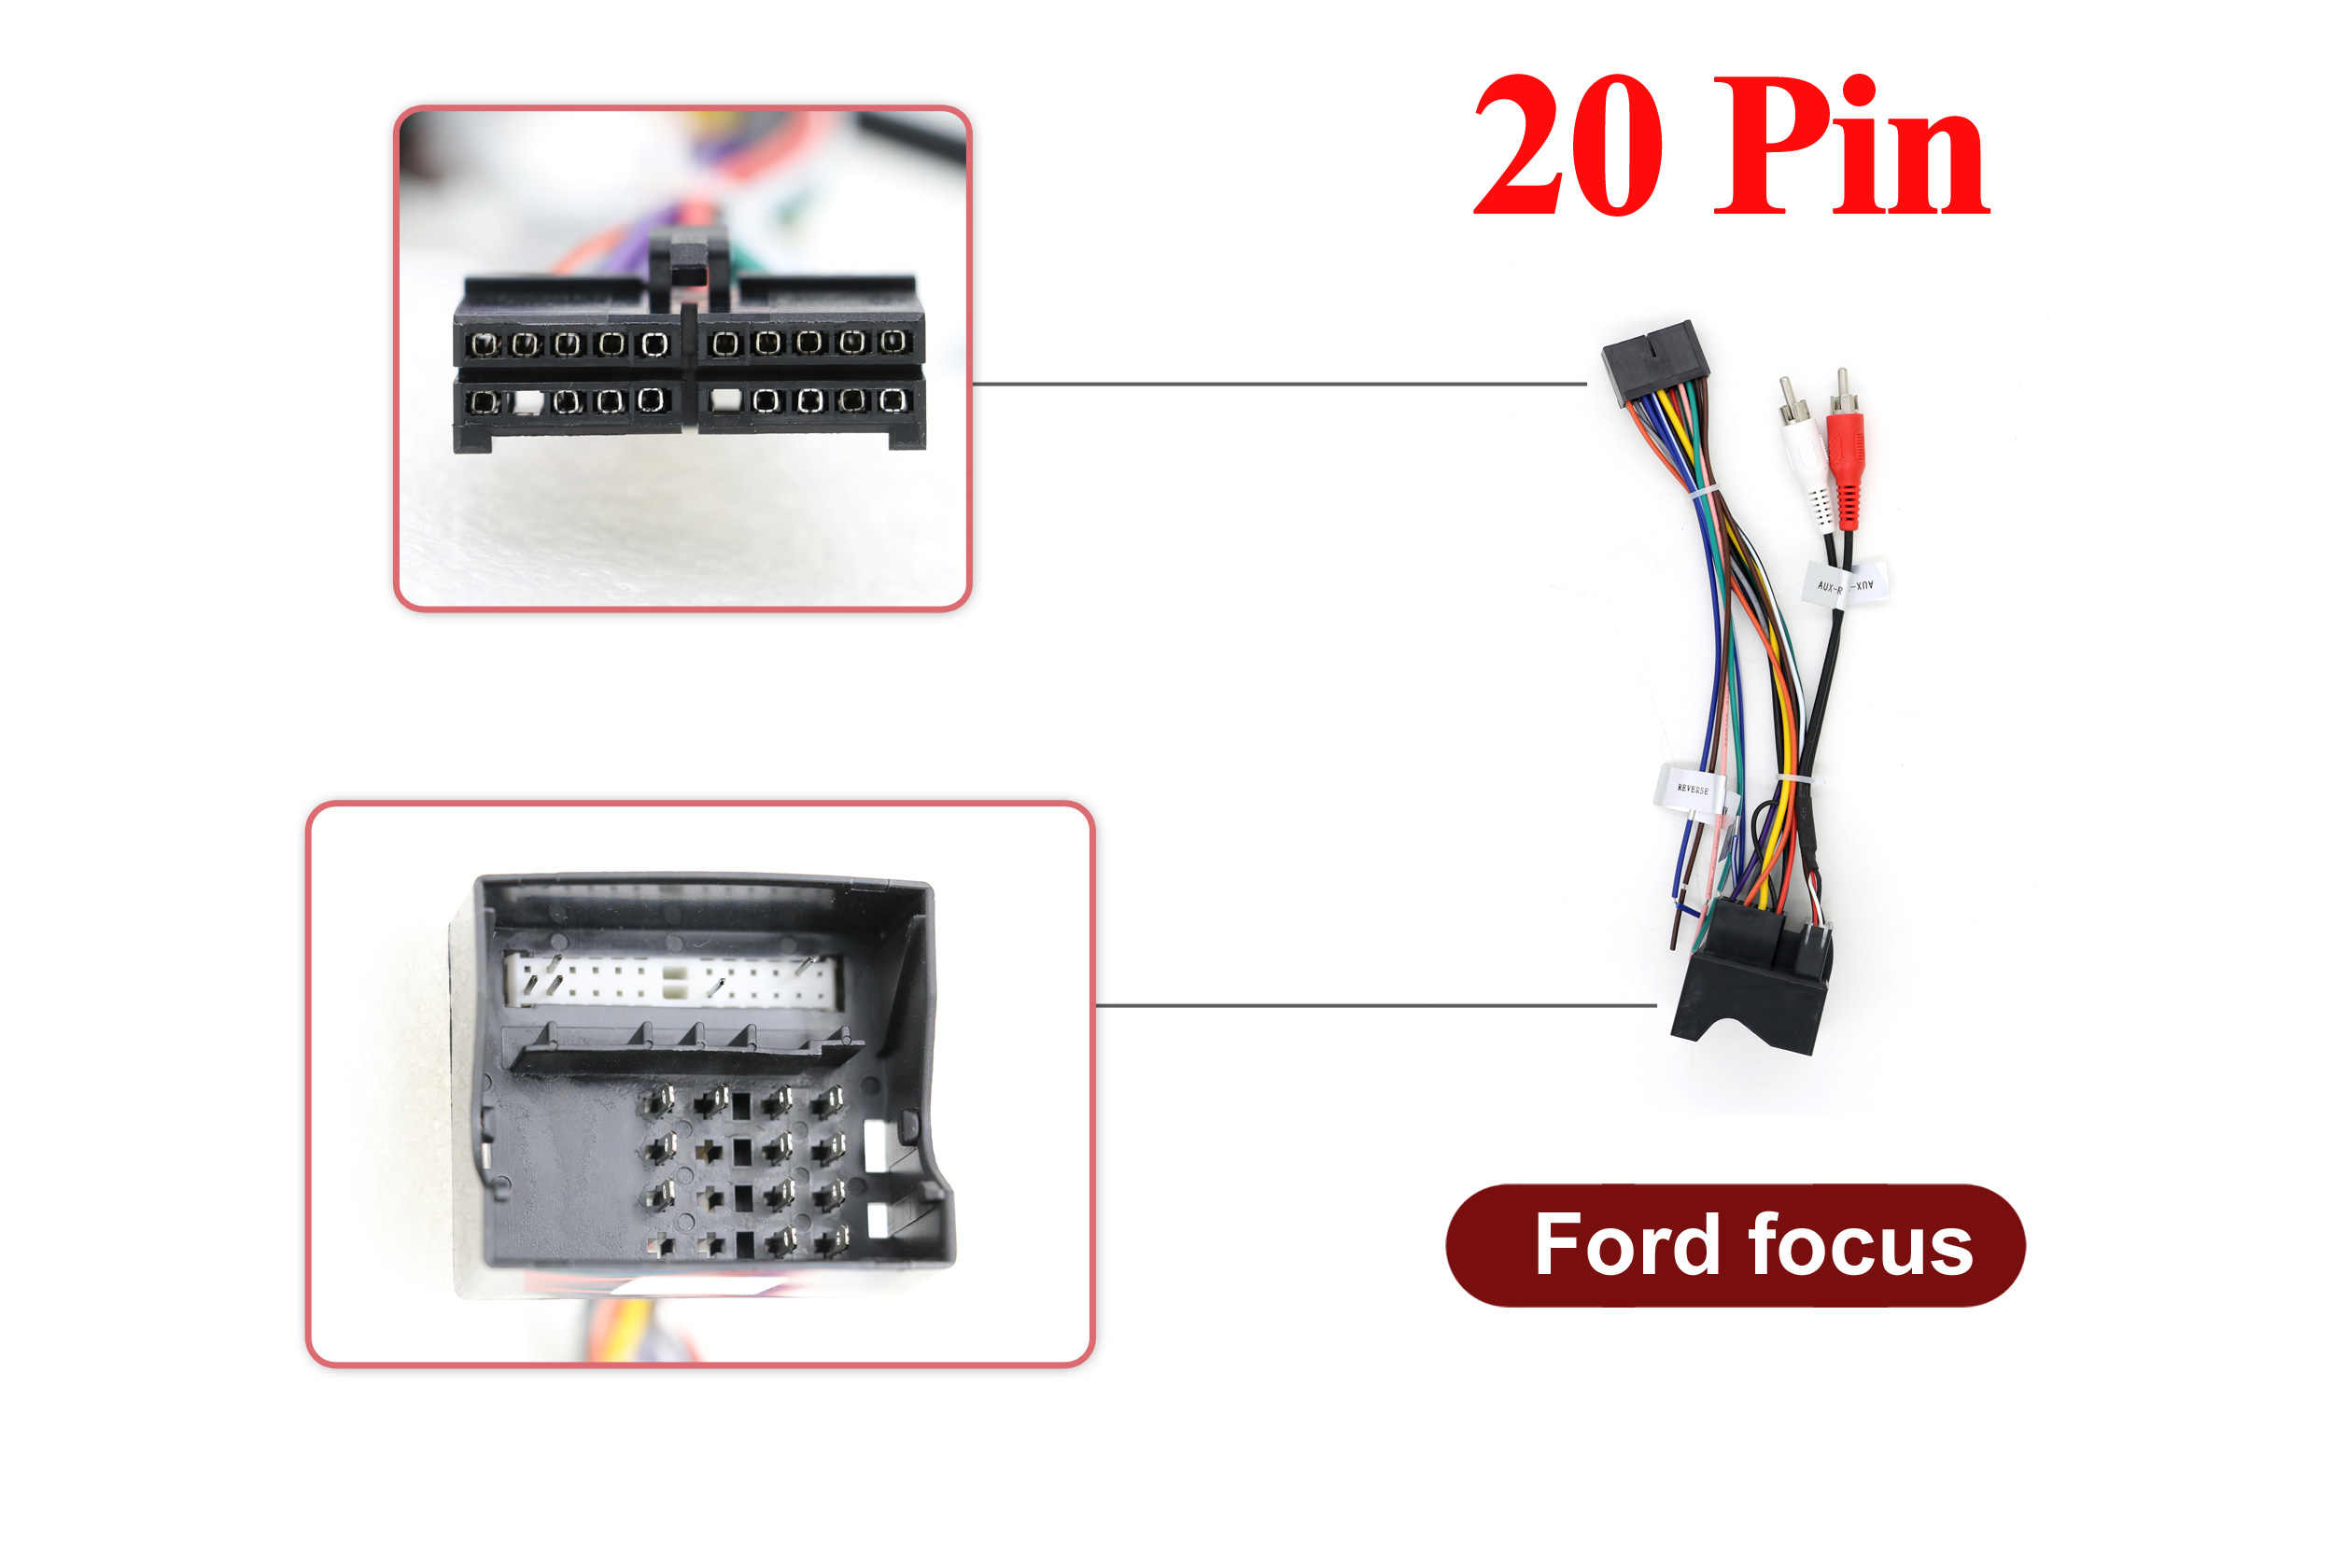 20 PIN For Ford Focus ISO Wiring Harness Car Radio Adaptor Connector Wire  Plug and play    - AliExpresswww.aliexpress.com